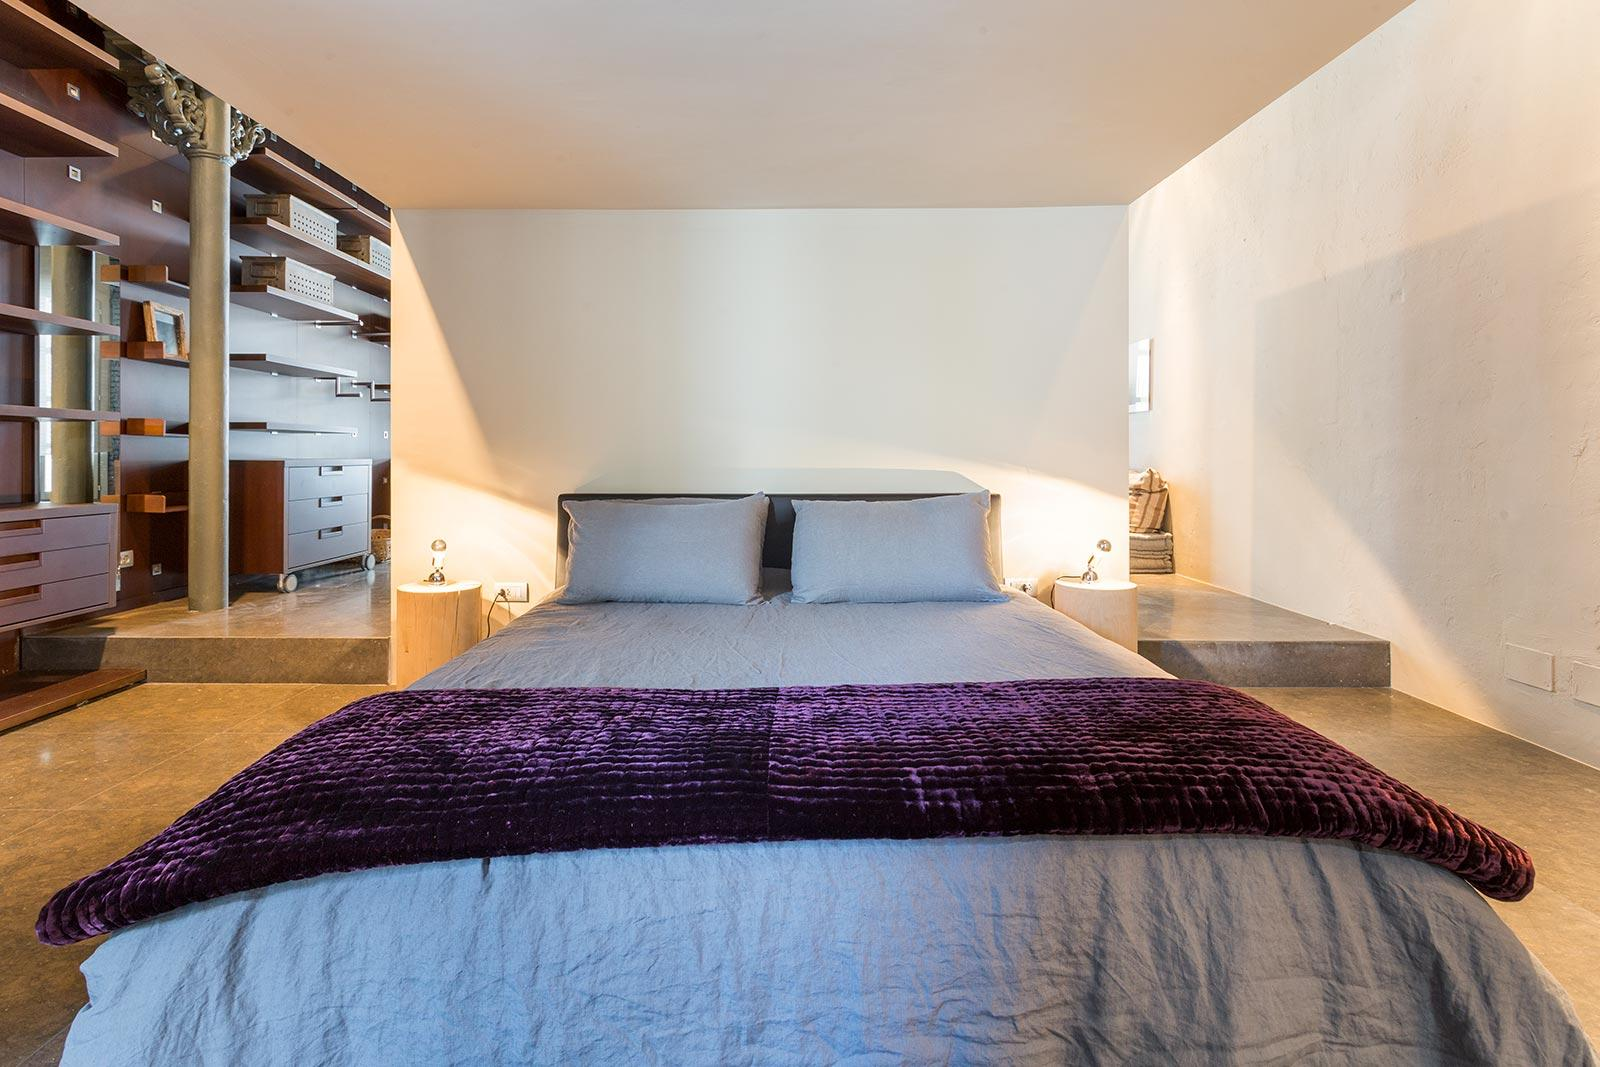 13. Stylish apartment for sale in Barcelona city - Step Inside A One-Of-A-Kind Barcelona Apartment